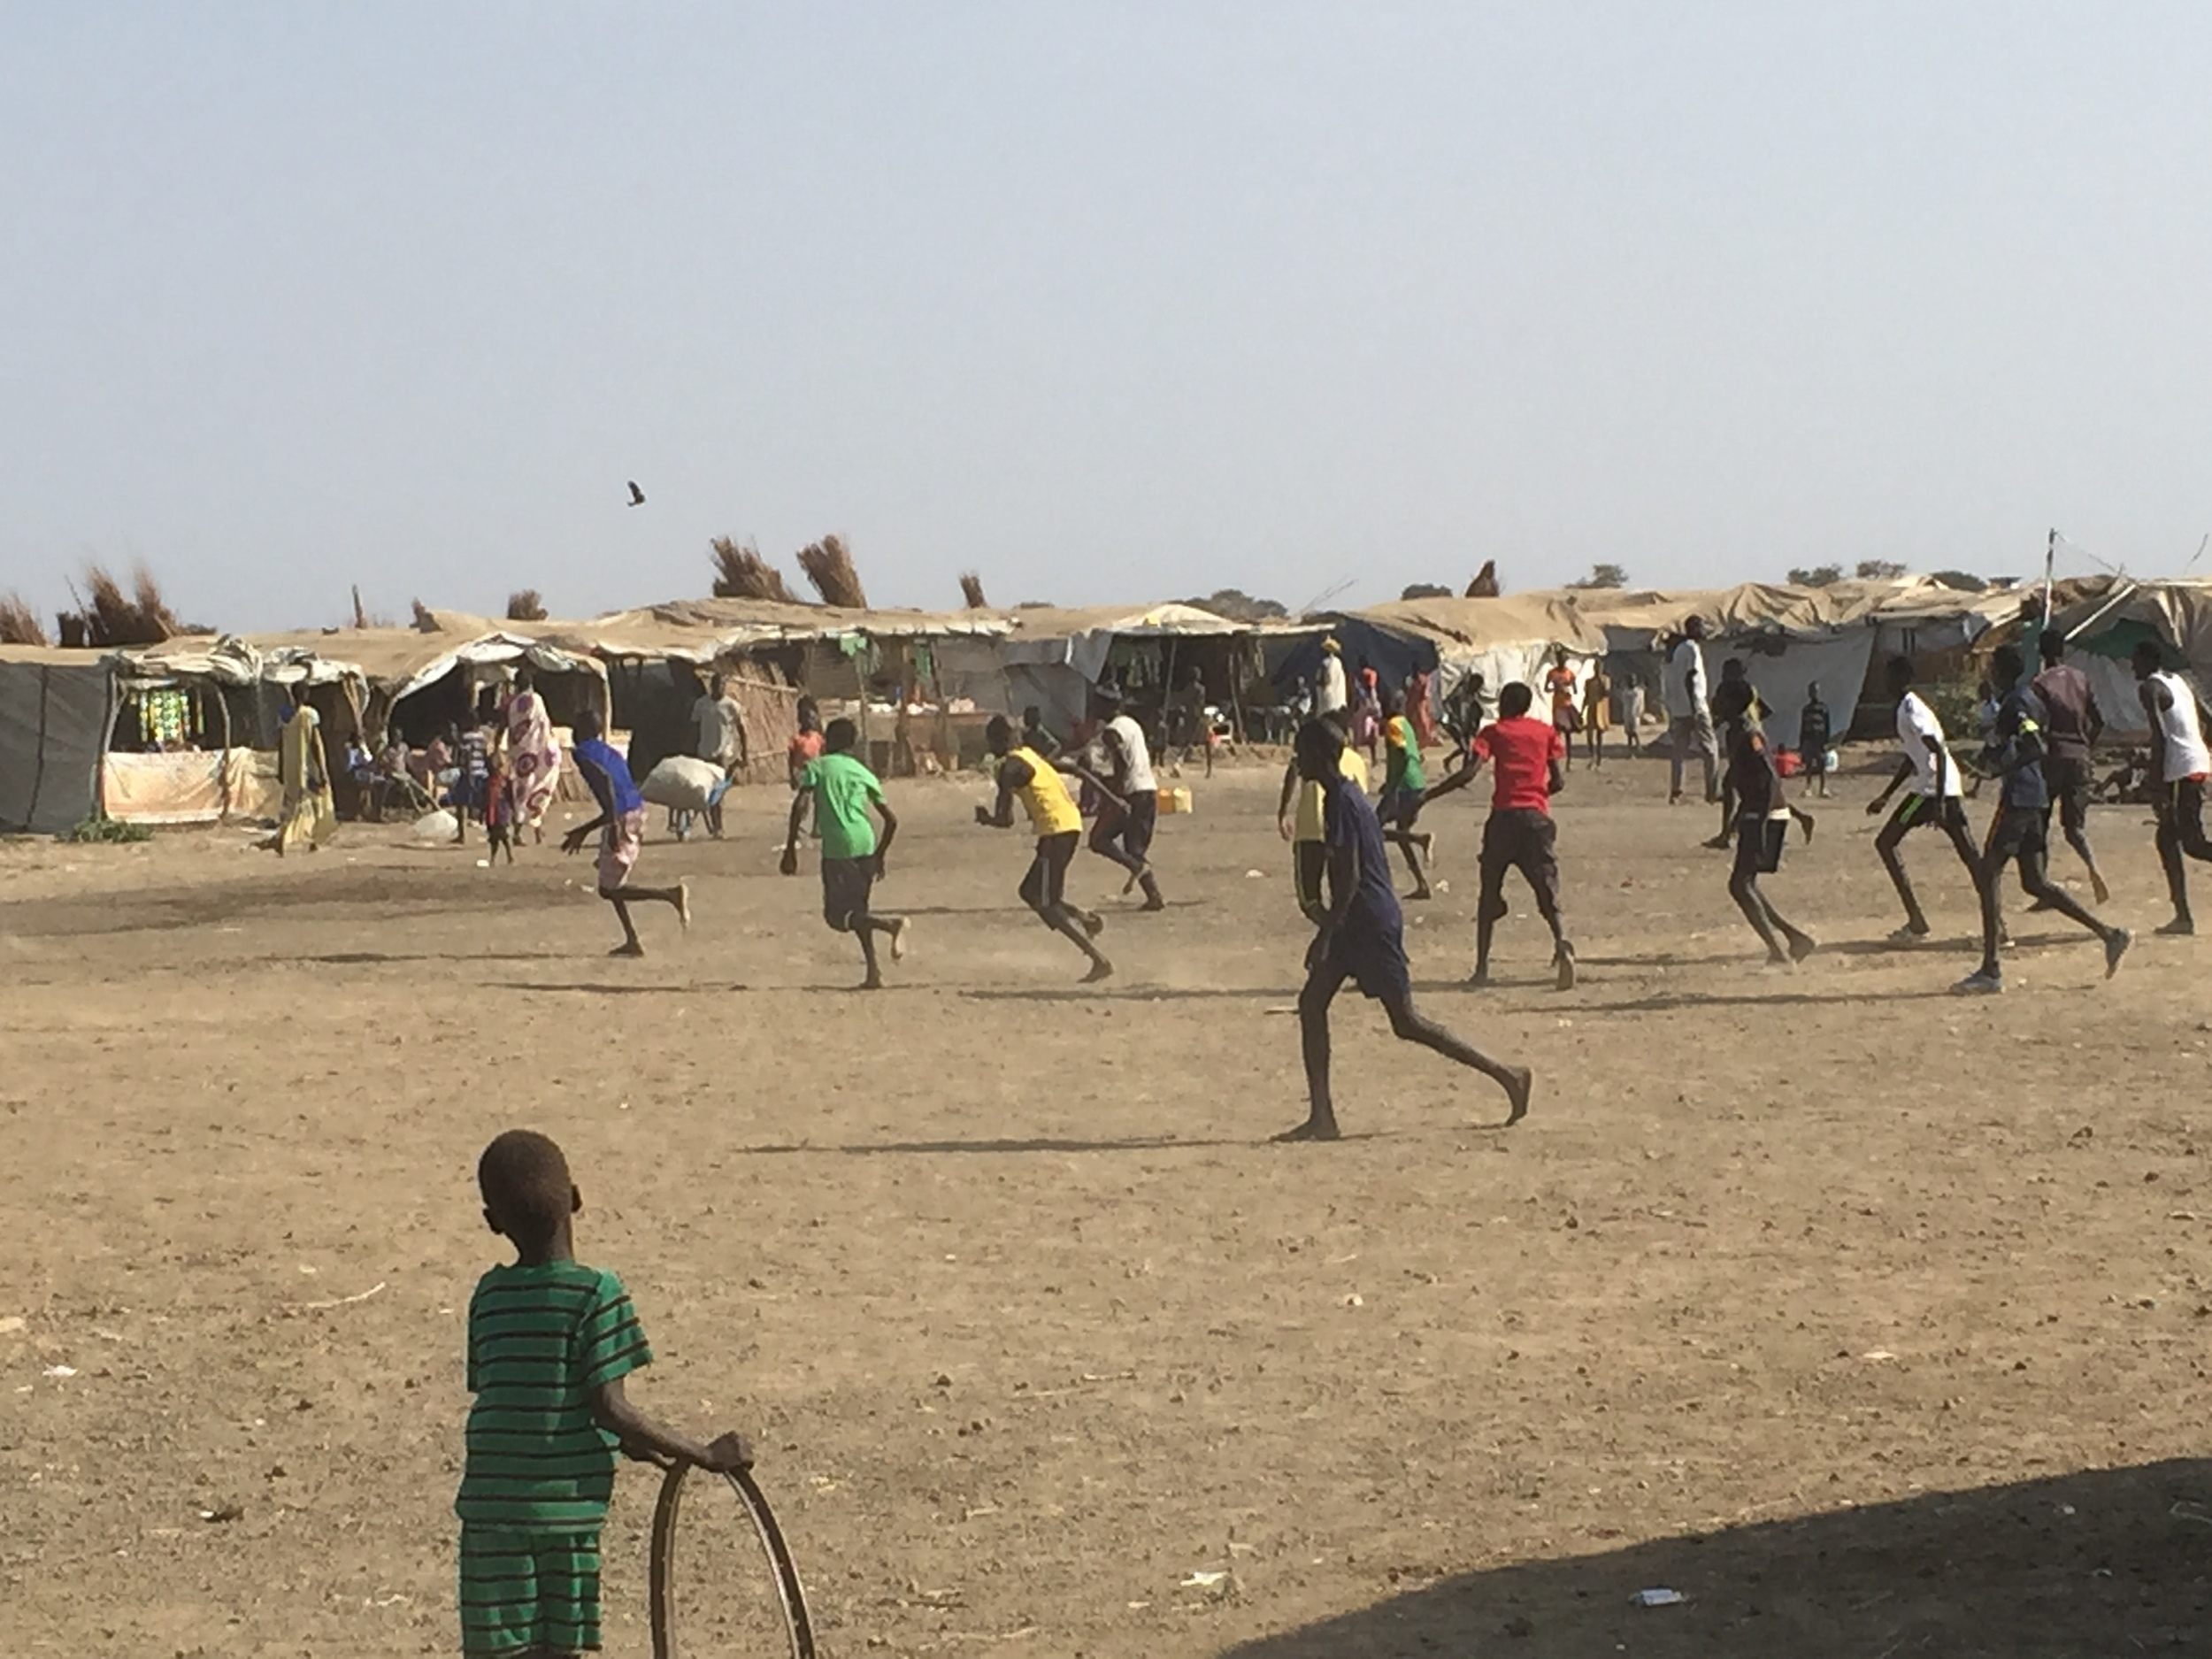 Boys play soccer in one of the camp's open spaces. Safe recreational ares are critical for this population, which has experienced severe trauma.